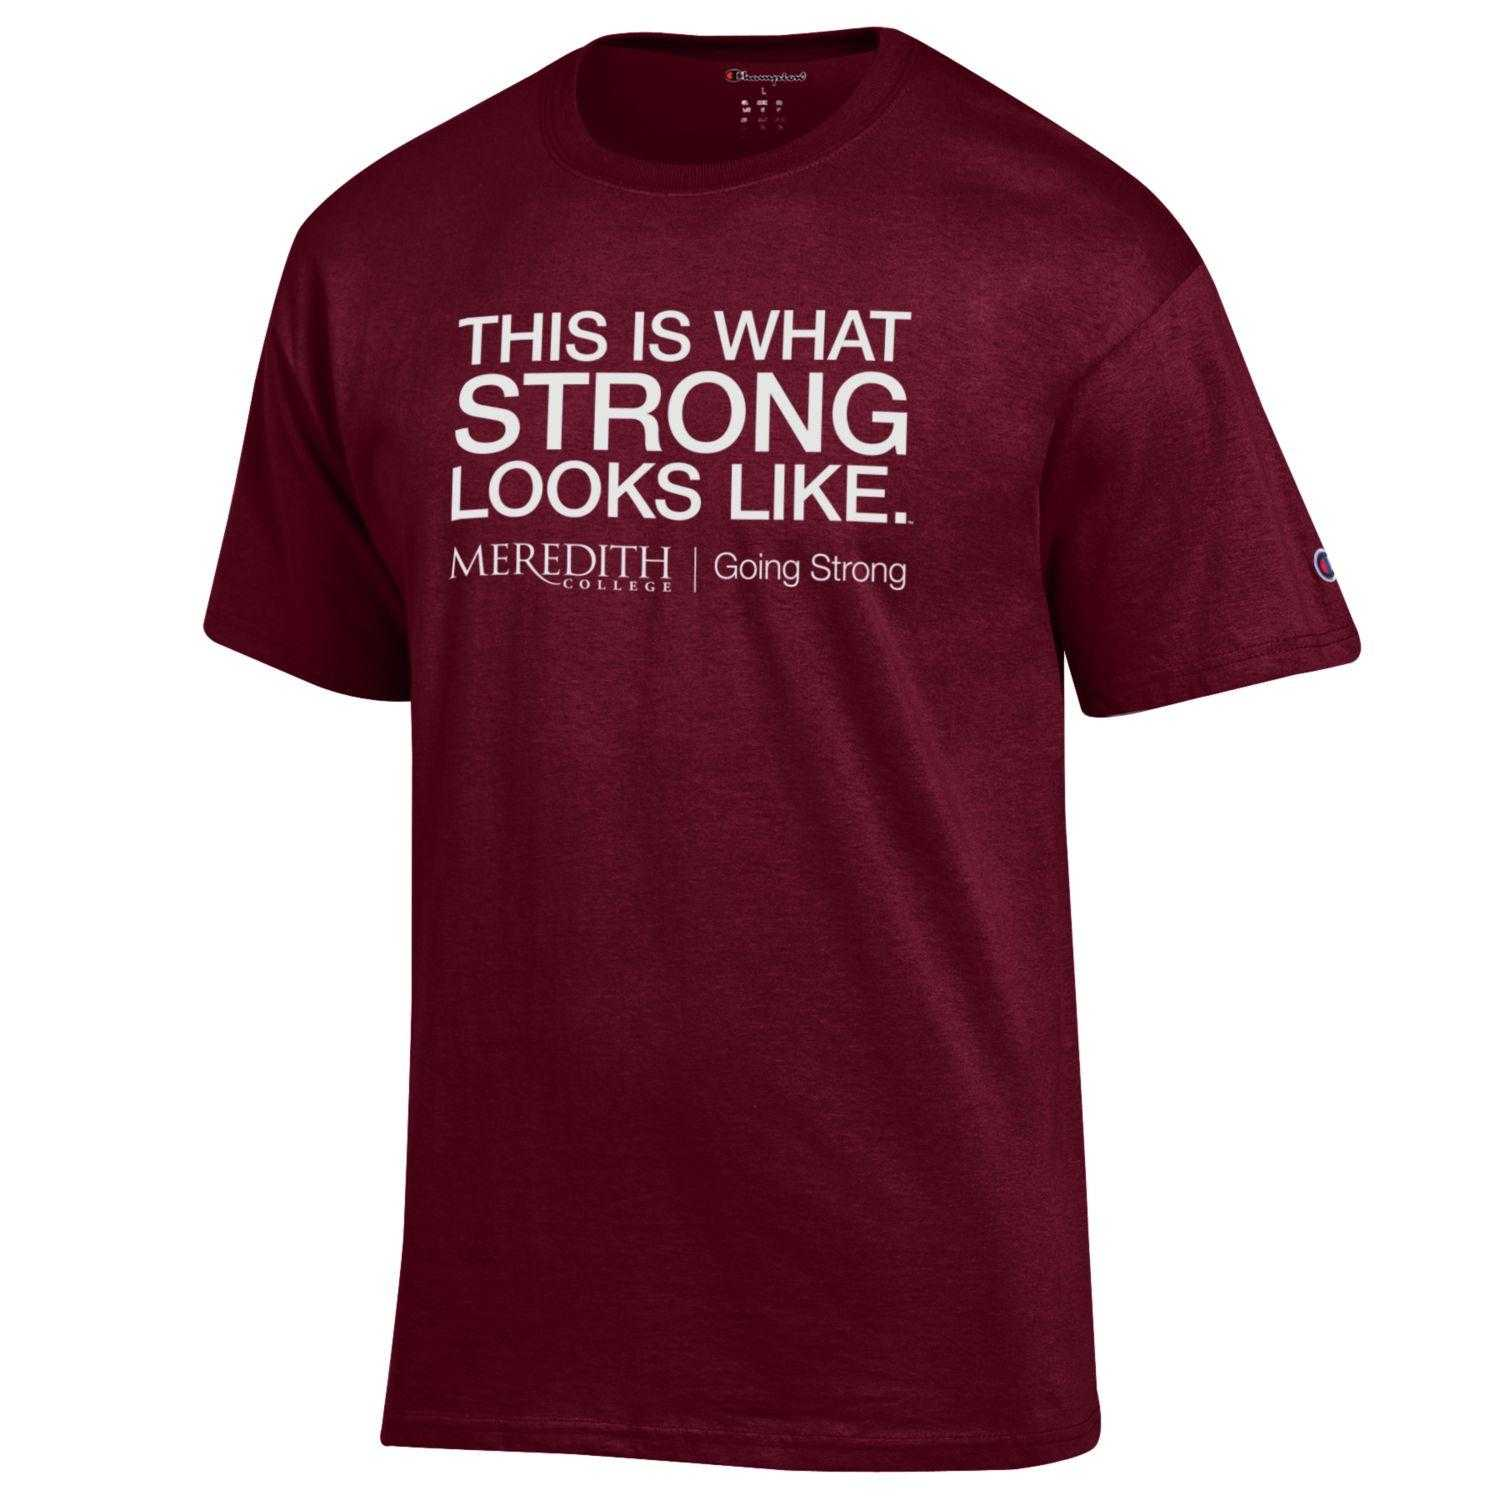 Image for the T-Shirt This is What Strong Looks Like Champion product